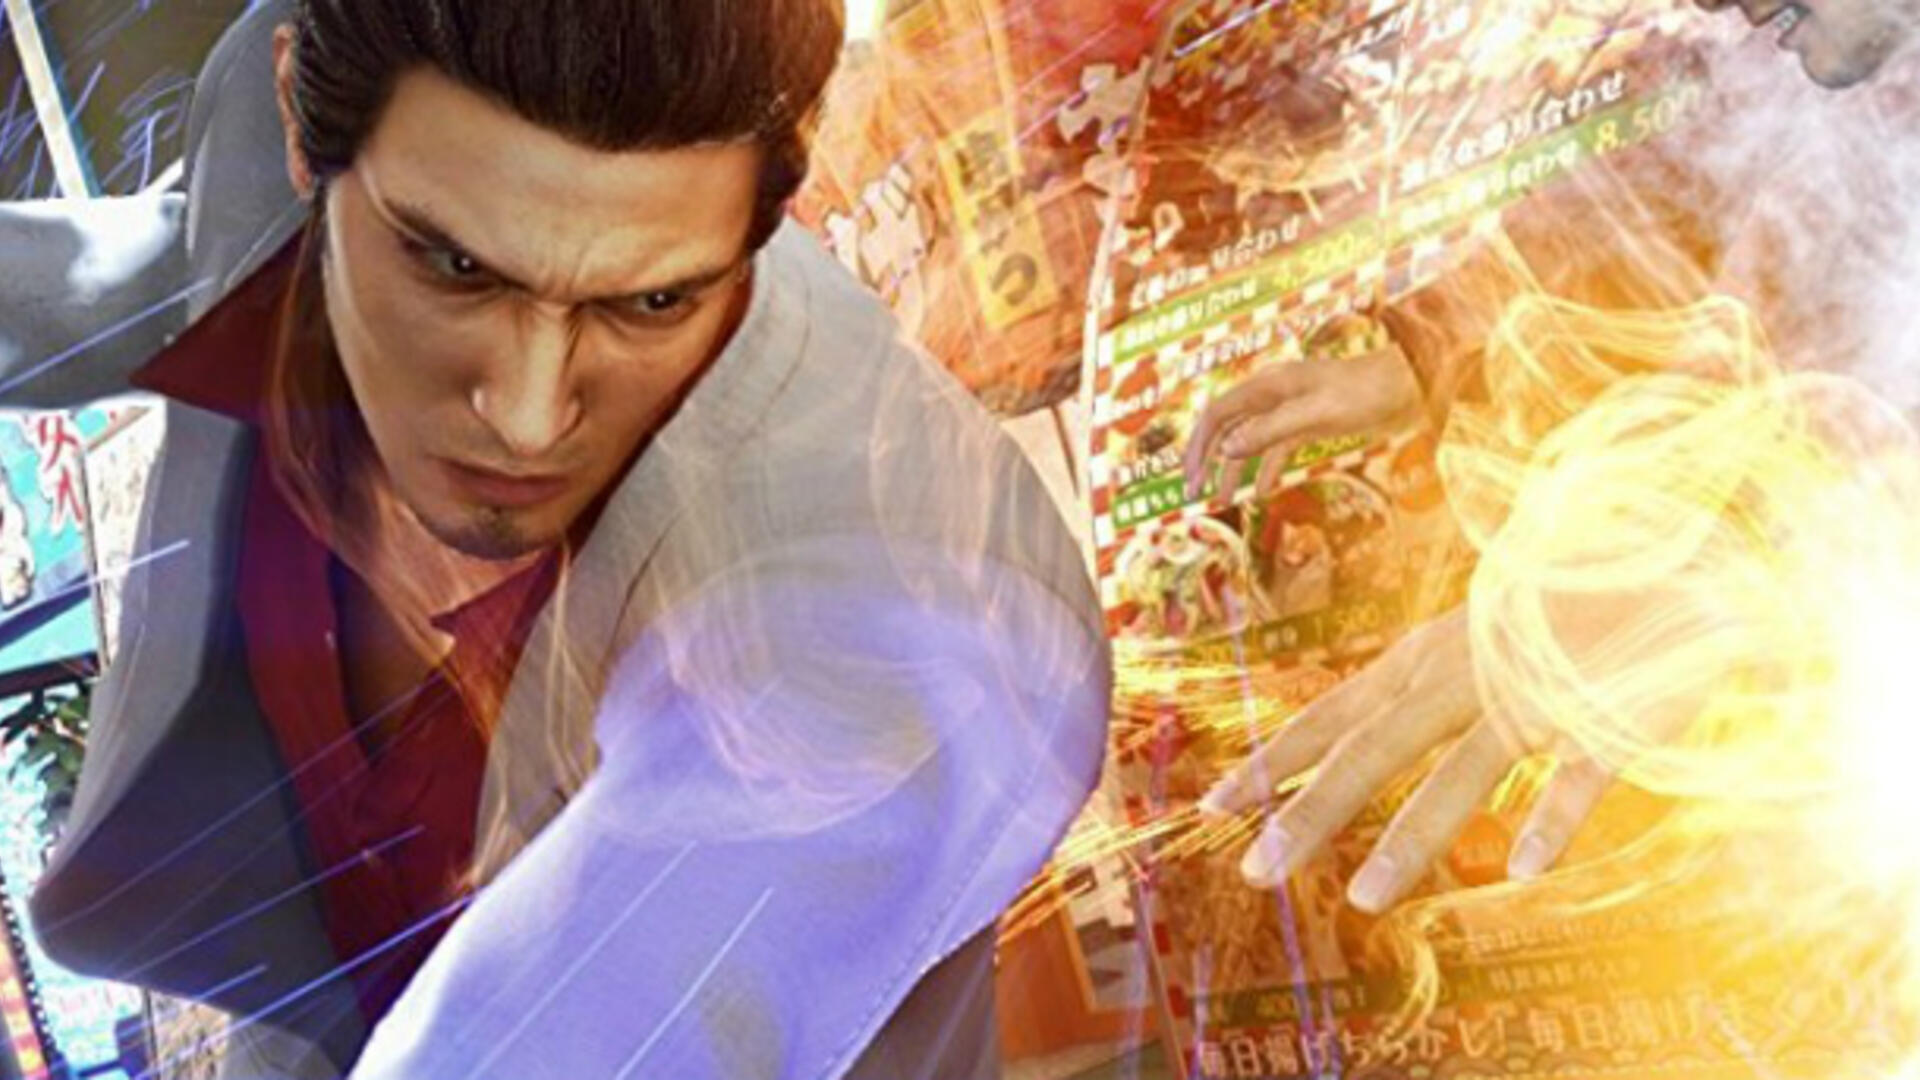 Yakuza Kiwami 2 Demo Available Now on the PlayStation Store